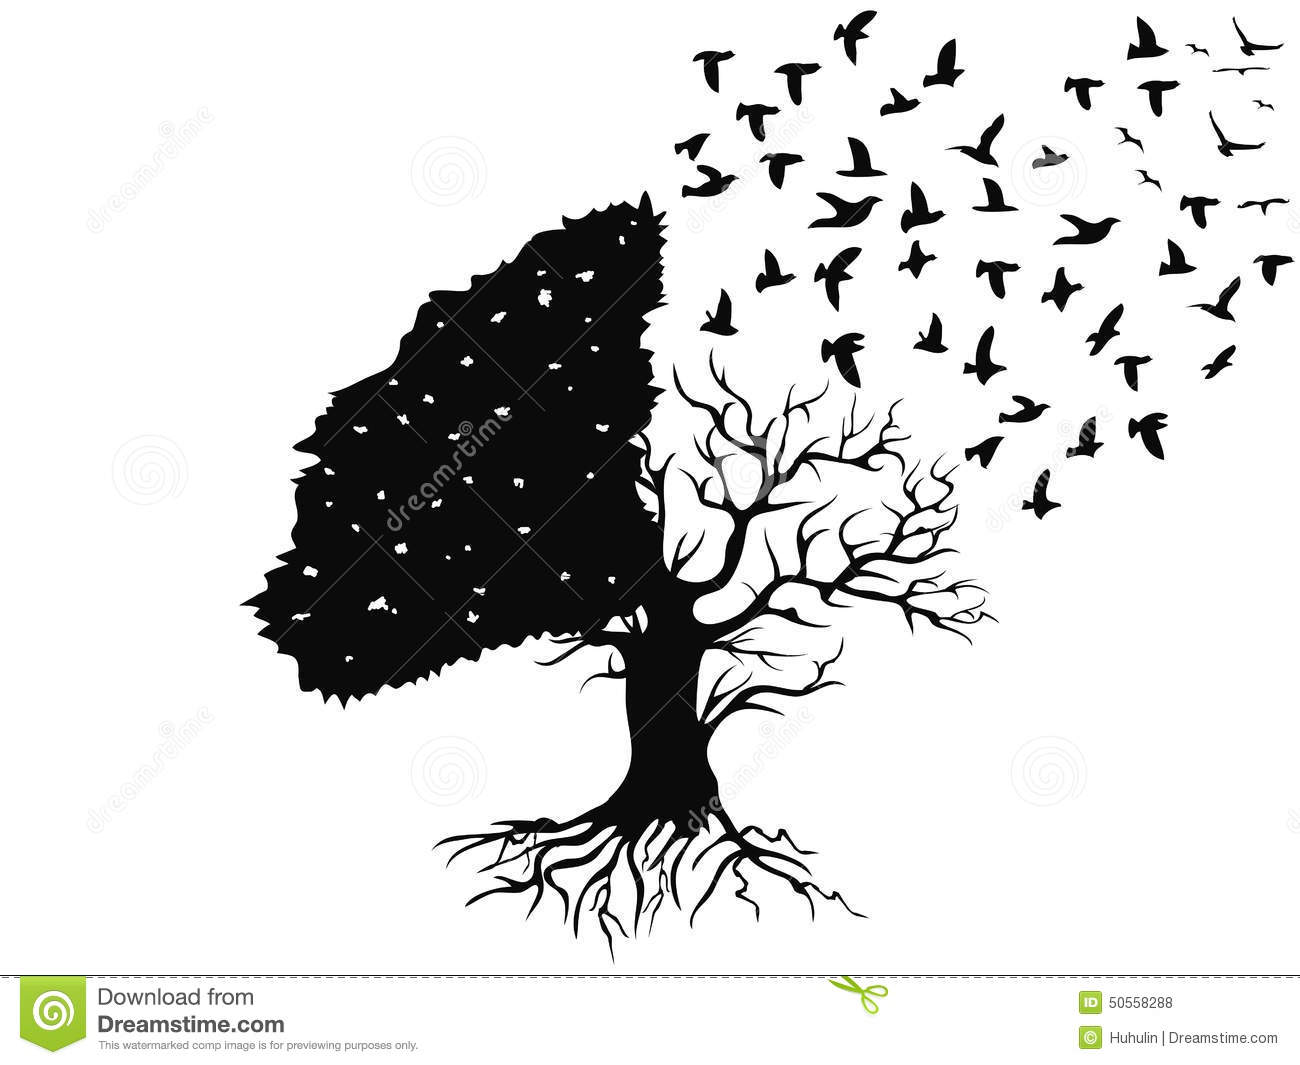 birds flying from the tree stock vector illustration of plant cell clipart black and white rose plant clipart black and white